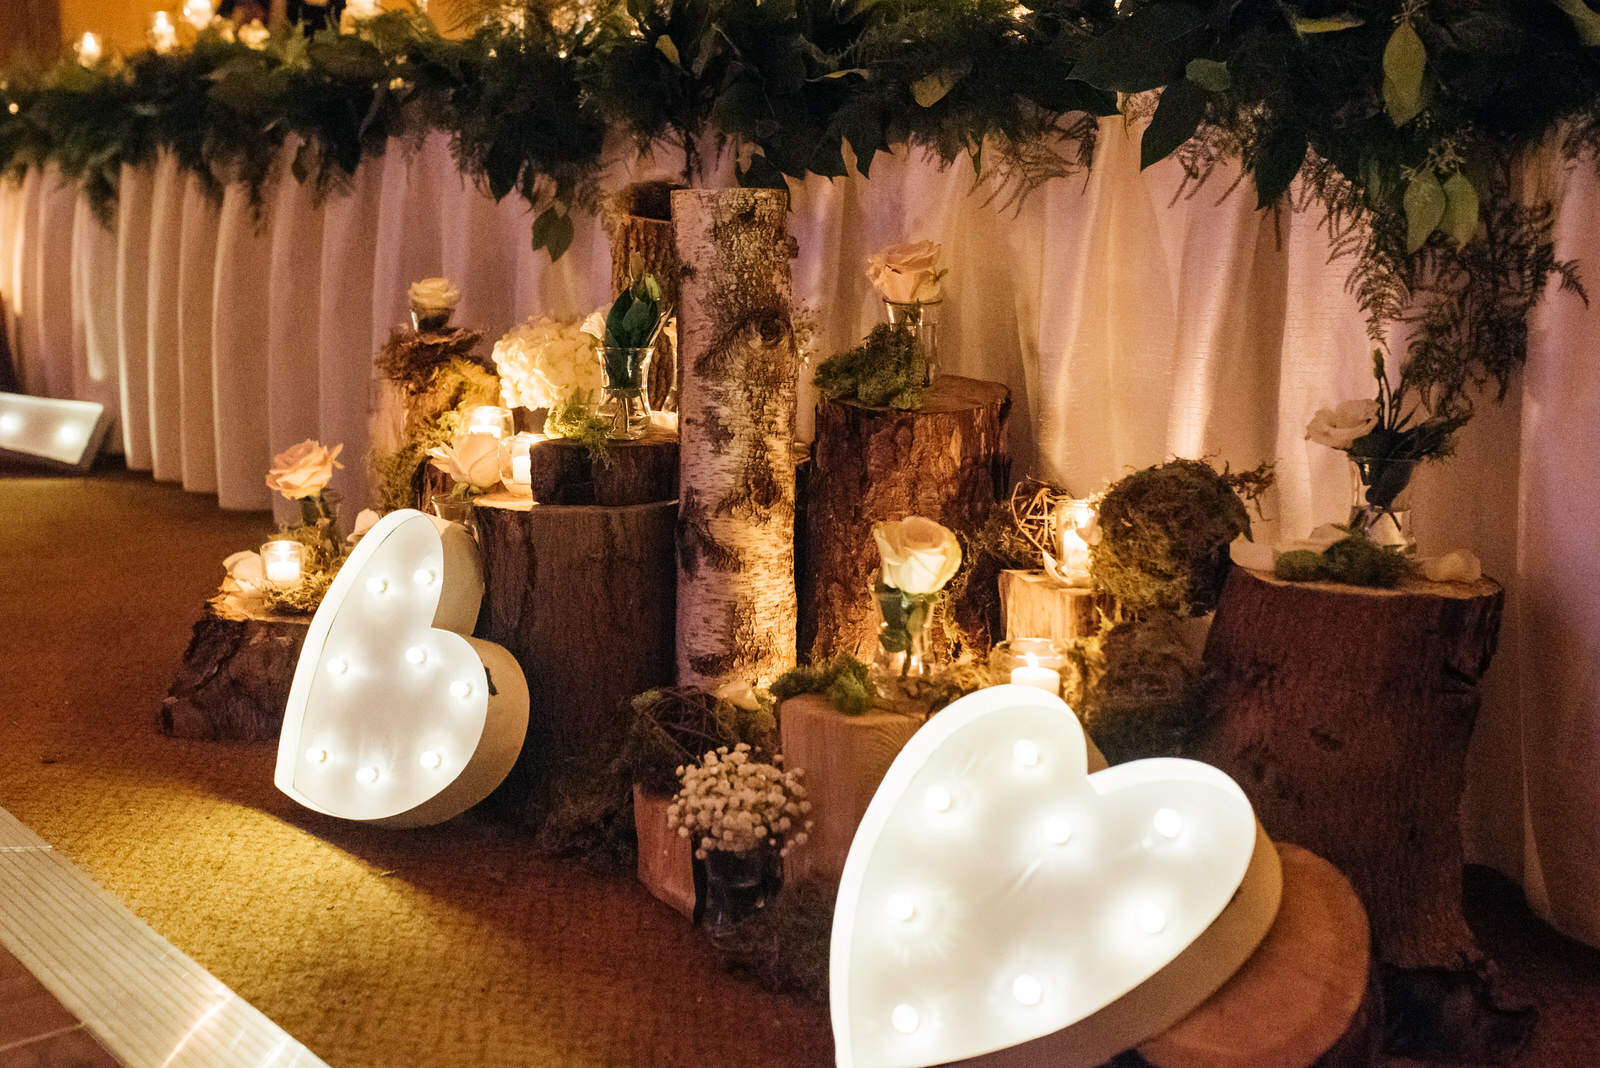 hilton_garden_inn_southpointe_pittsburgh_weddings_80.jpg